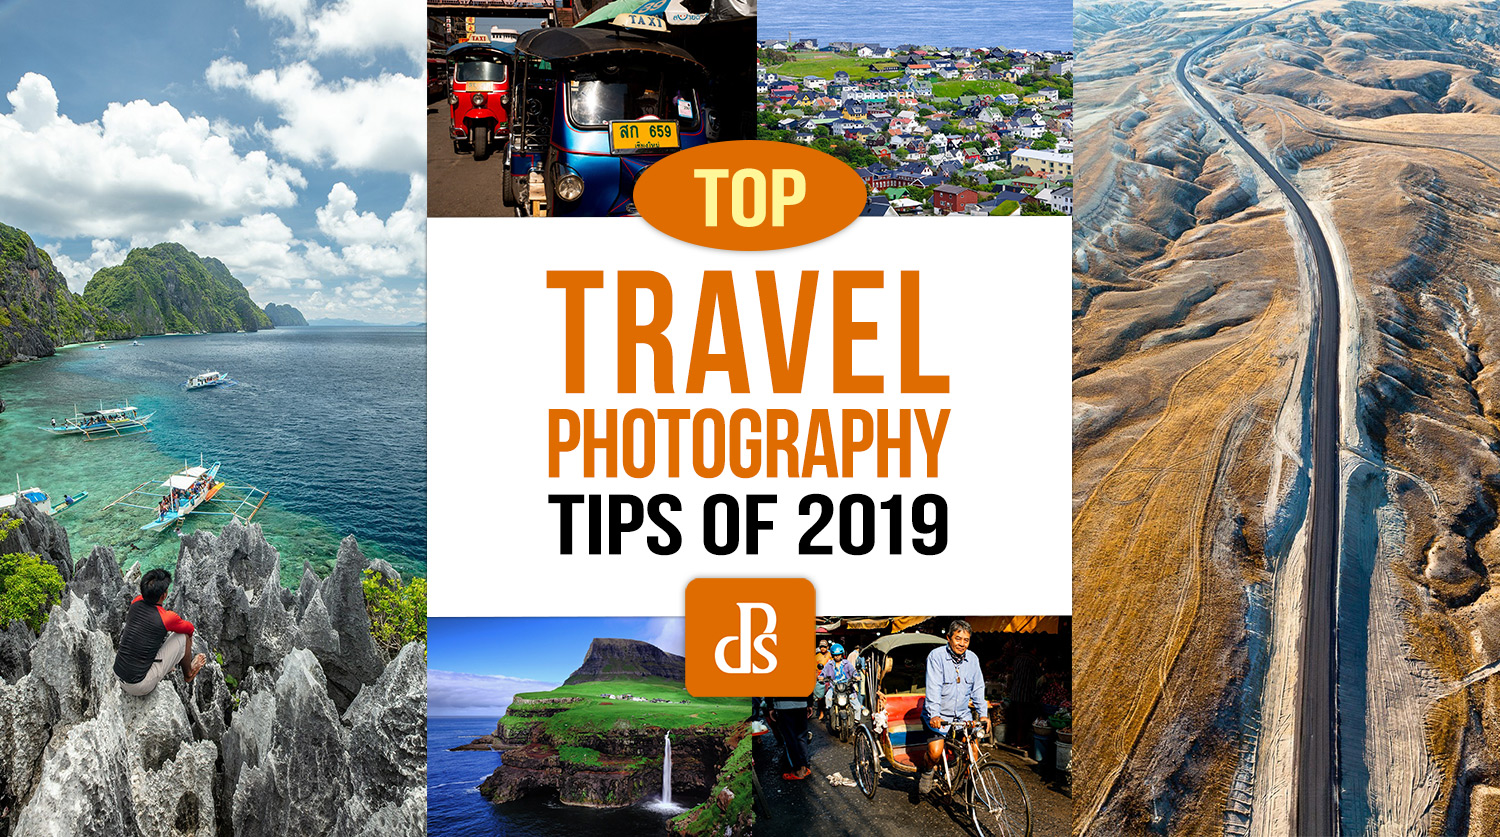 https://i0.wp.com/digital-photography-school.com/wp-content/uploads/2019/12/dps-top-travel-photography-tips-2019.jpg?resize=1500%2C837&ssl=1